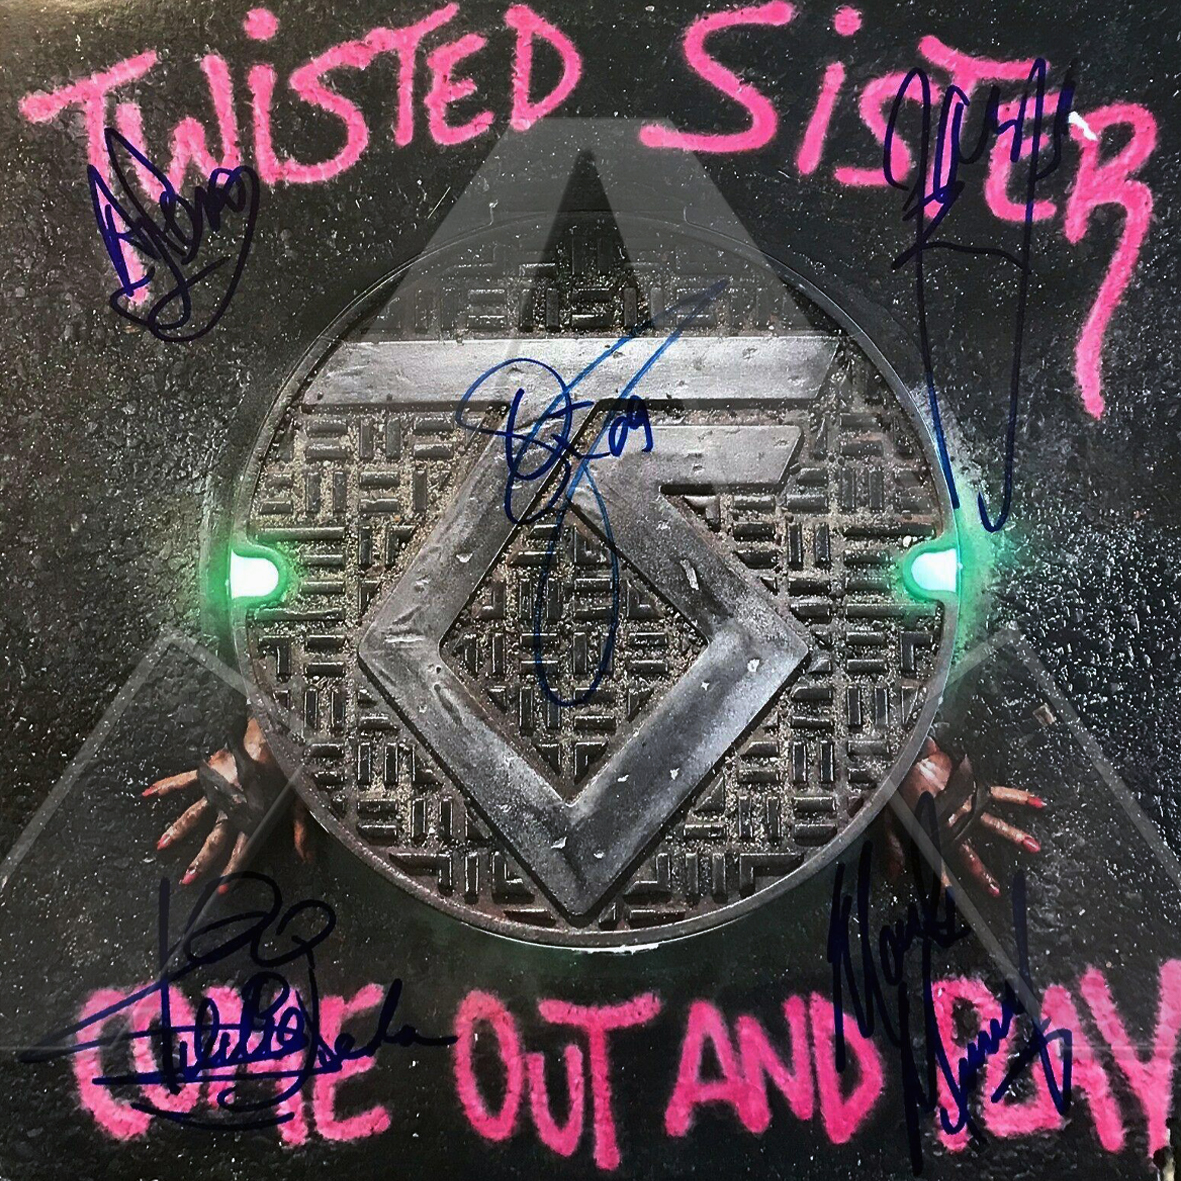 Twisted Sisters ★ Come Out and Play (vinyl album US 7567812751 signed)